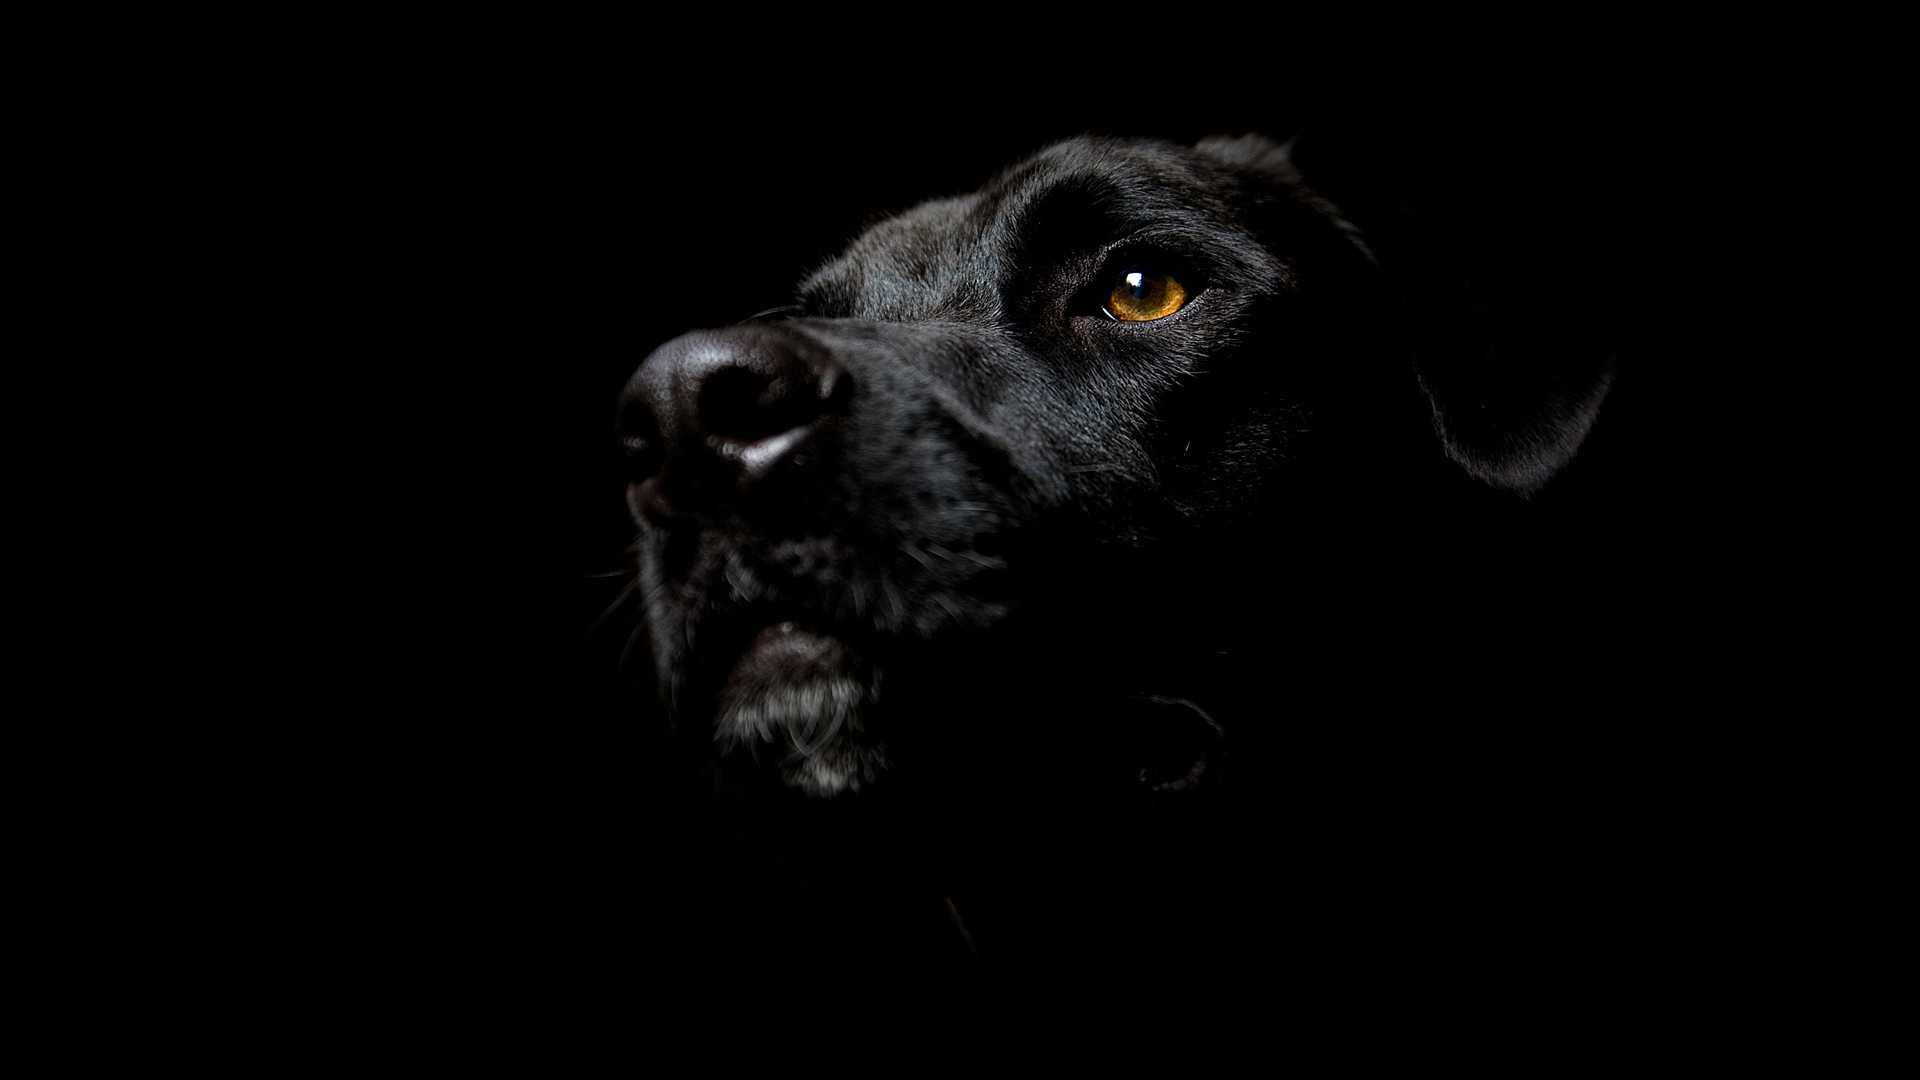 black wallpaperscomwp contentuploadswallpapersBlack Labrador Dog 1920x1080